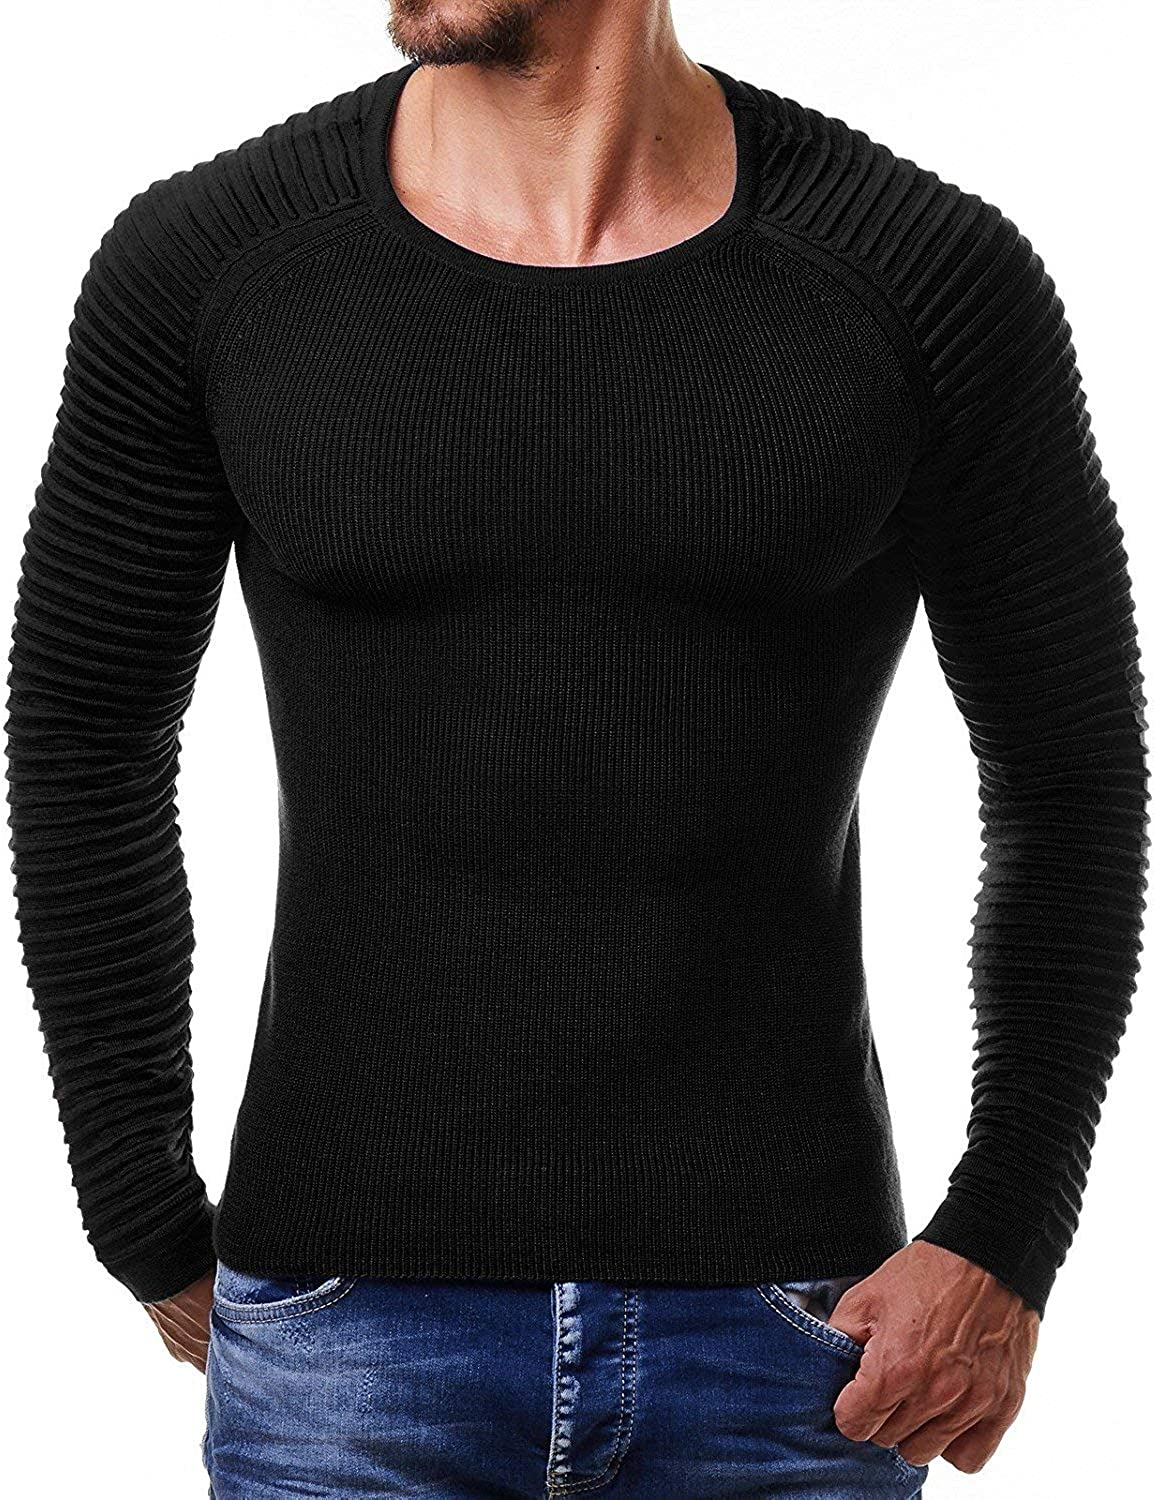 COOFANDY Men's Cable Knit Sweater Stripe Crew Neck Long Sleeve Pullover